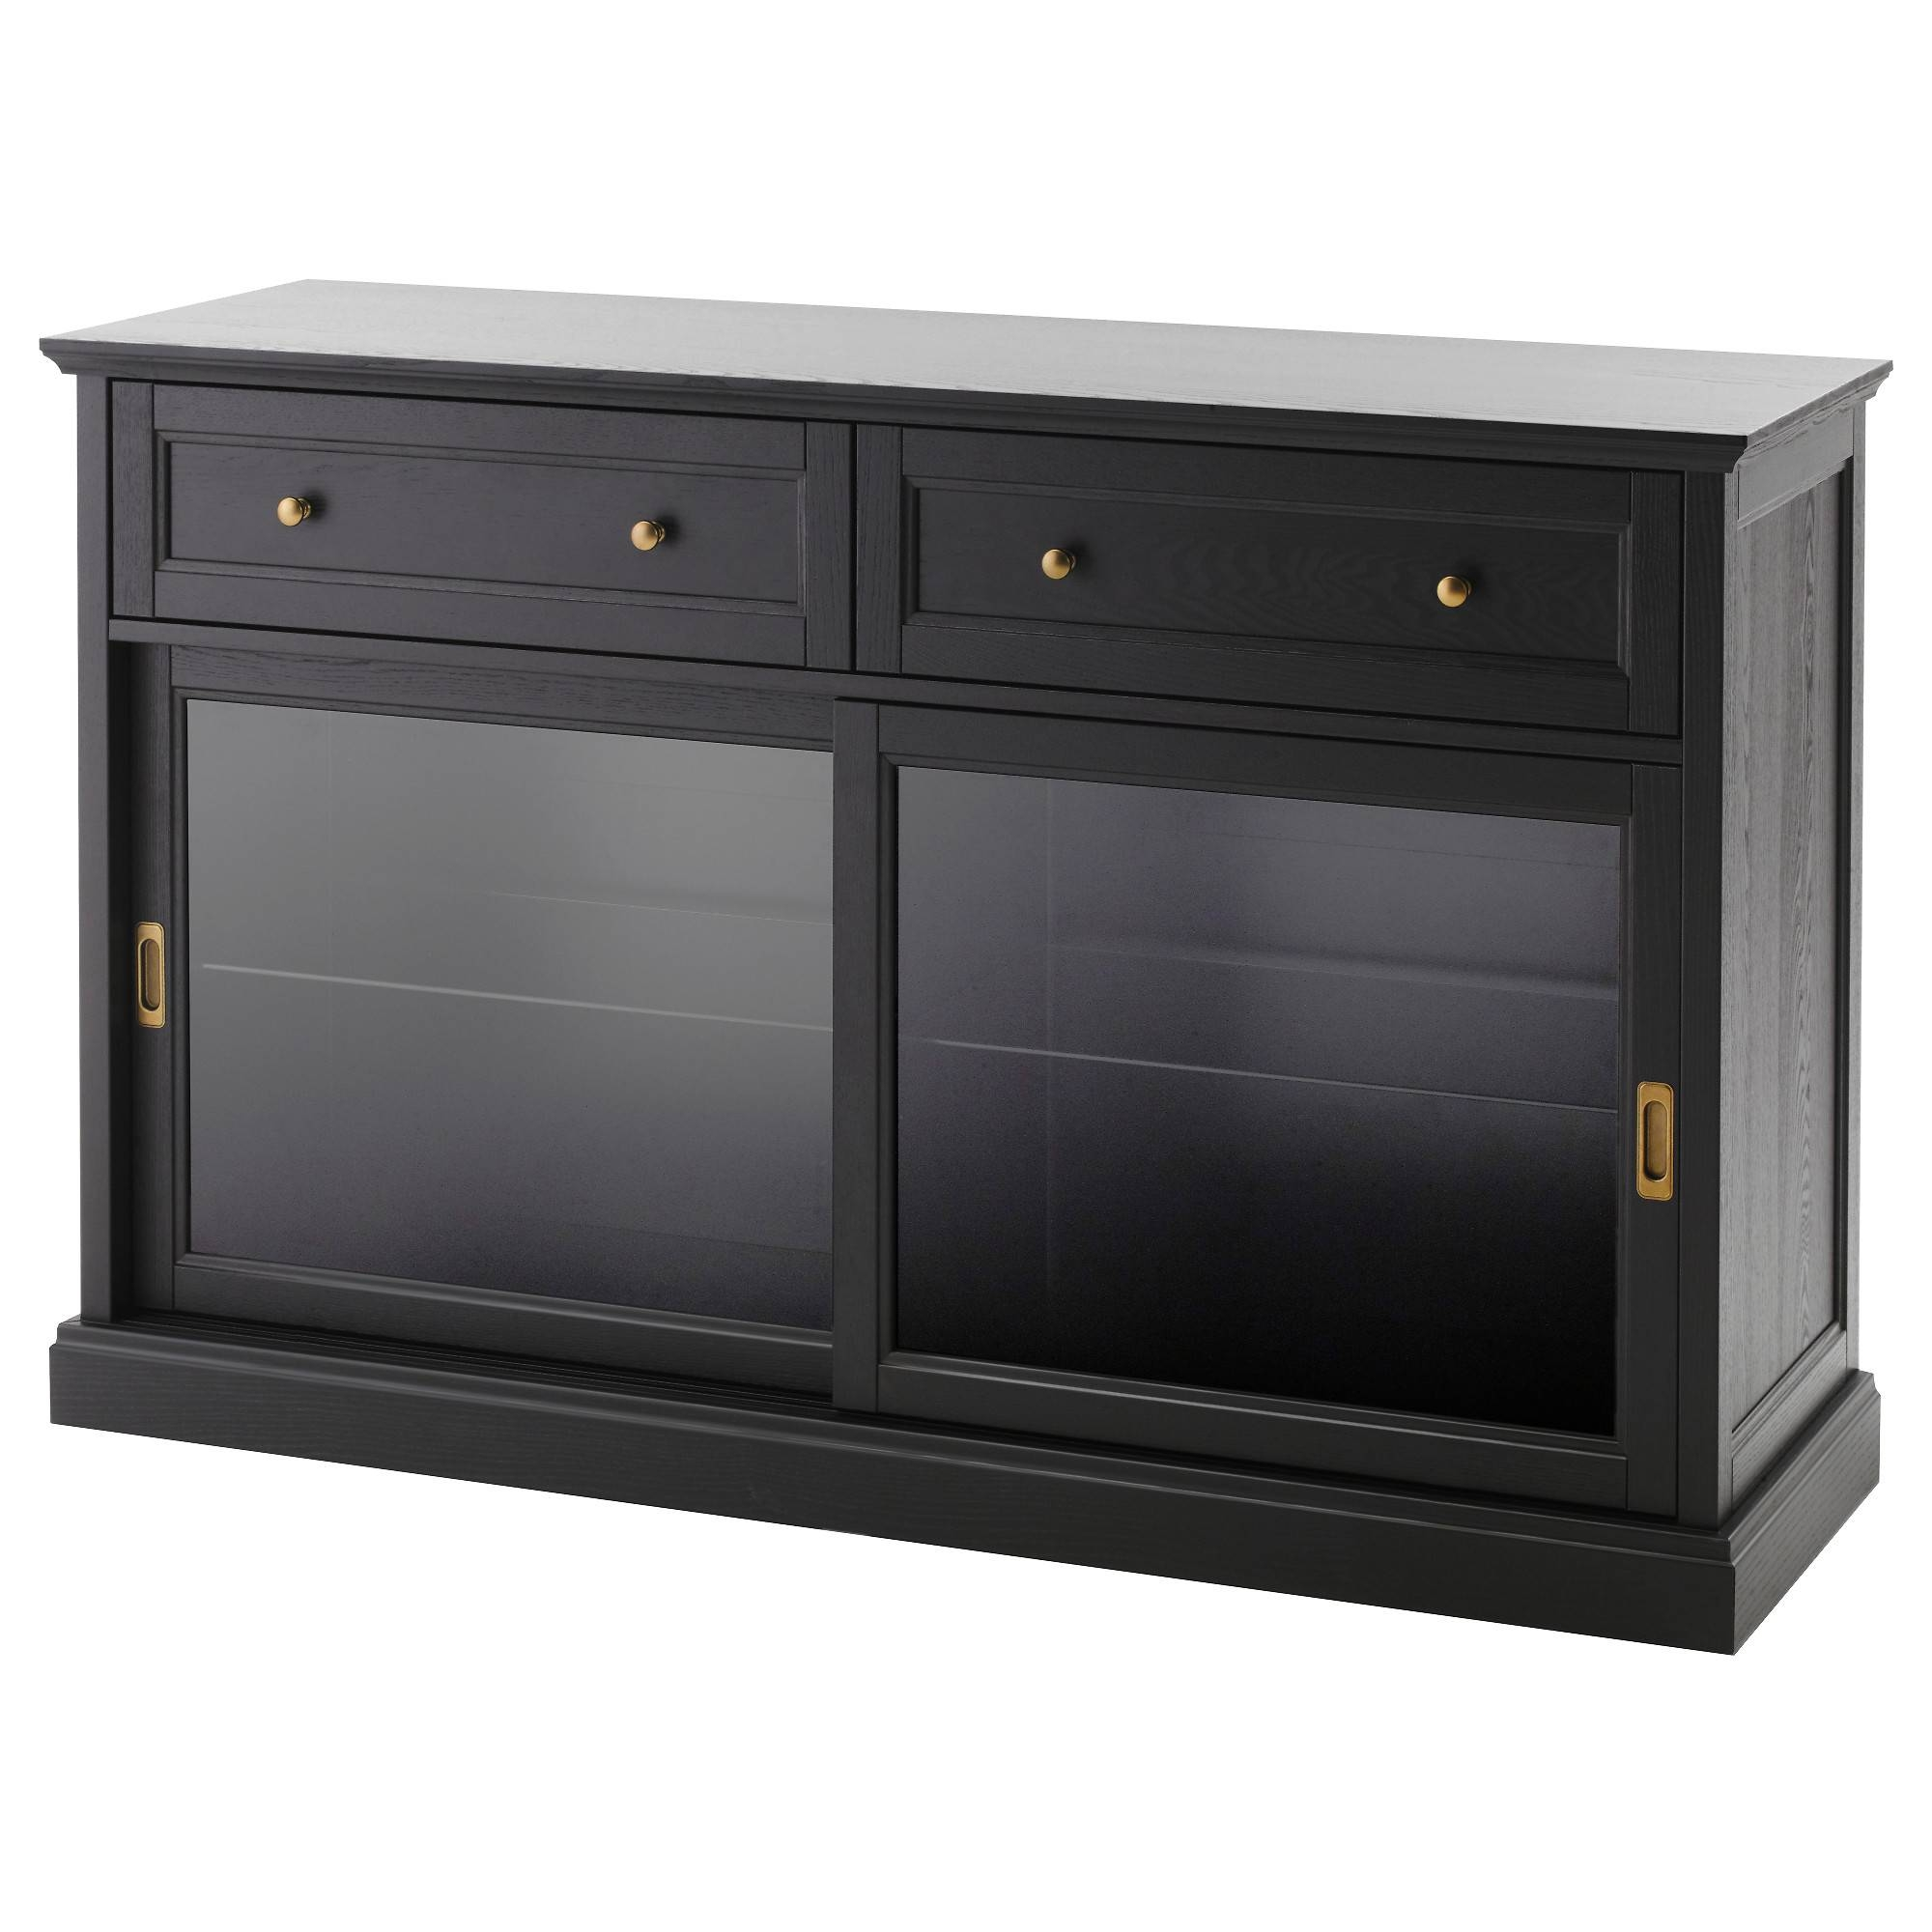 Buffet Tables & Sideboards – Ikea For Black Wood Sideboards (#1 of 15)